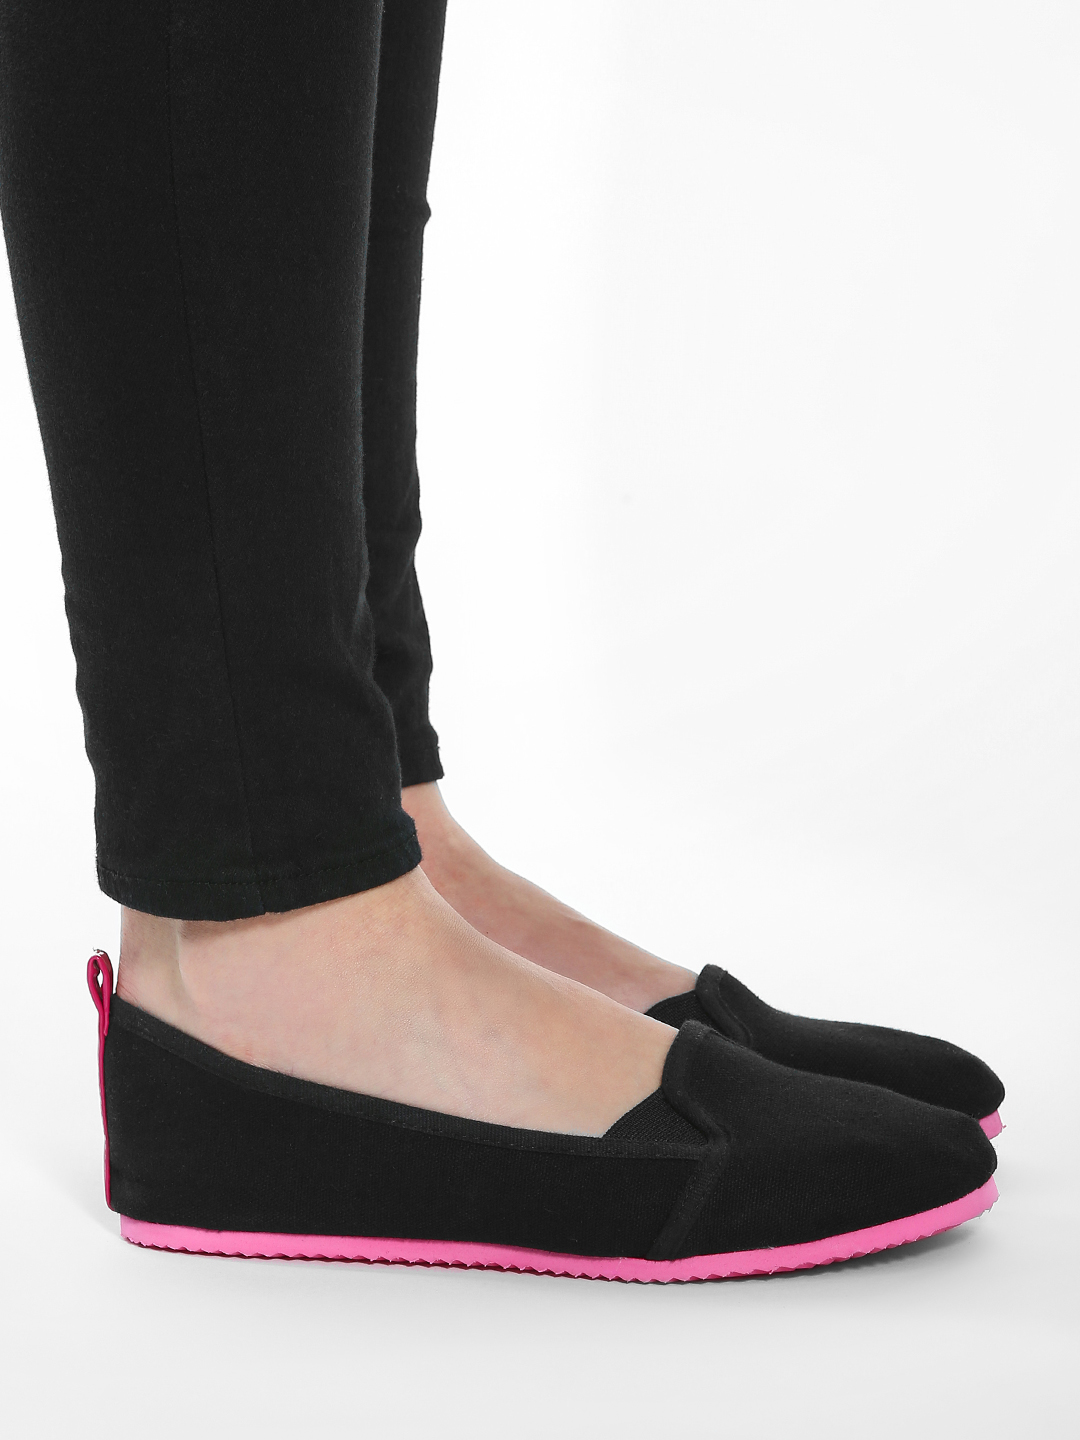 KOOVS Black Contrast Sole Canvas Ballerinas 1